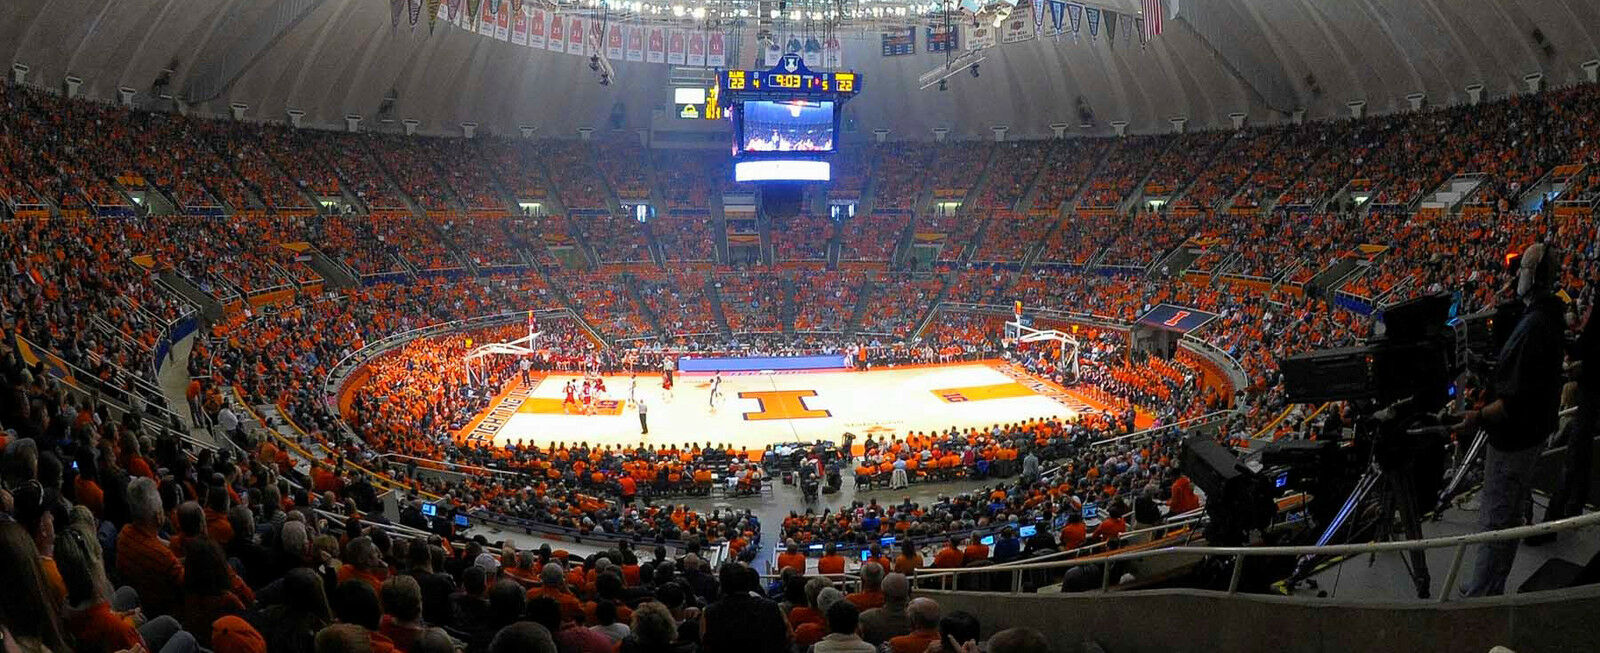 East Tennessee State Buccaneers at Illinois Fighting Illini Basketball